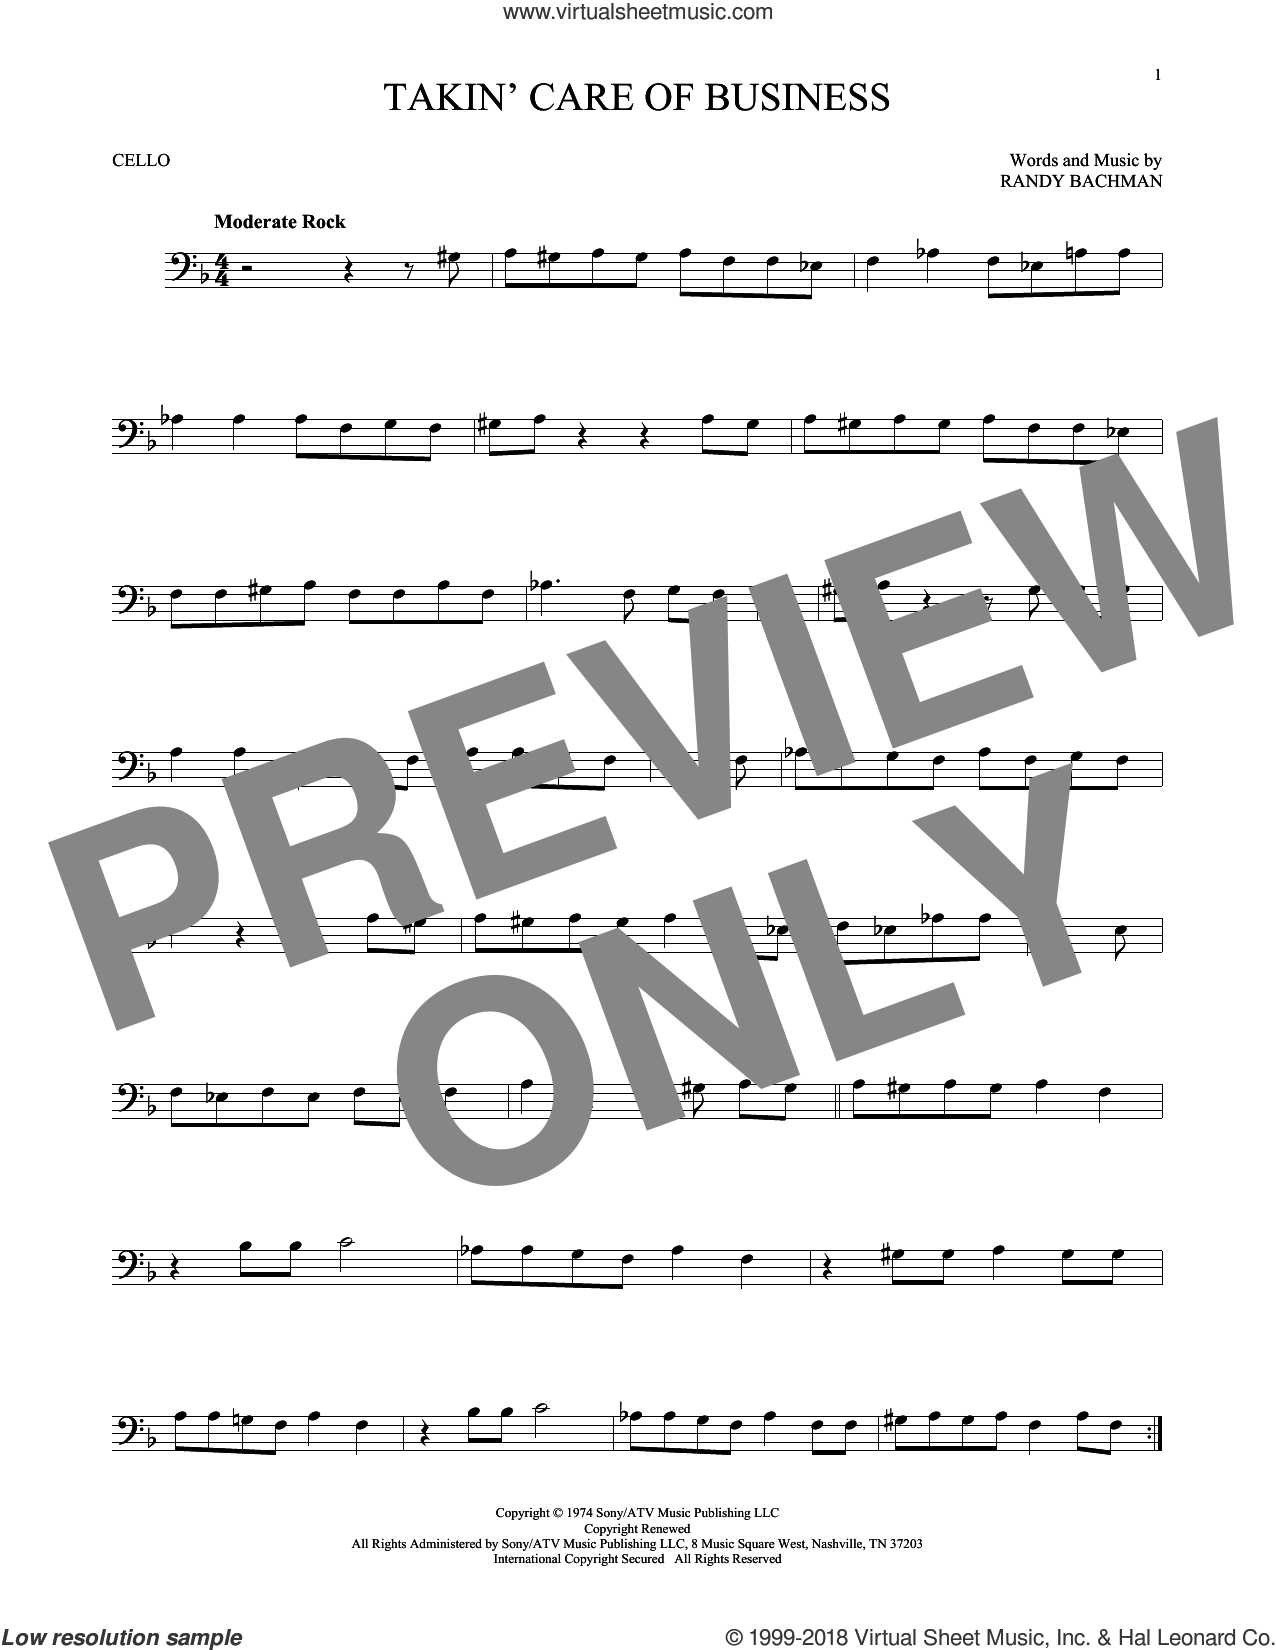 Takin' Care Of Business sheet music for cello solo by Randy Bachman. Score Image Preview.